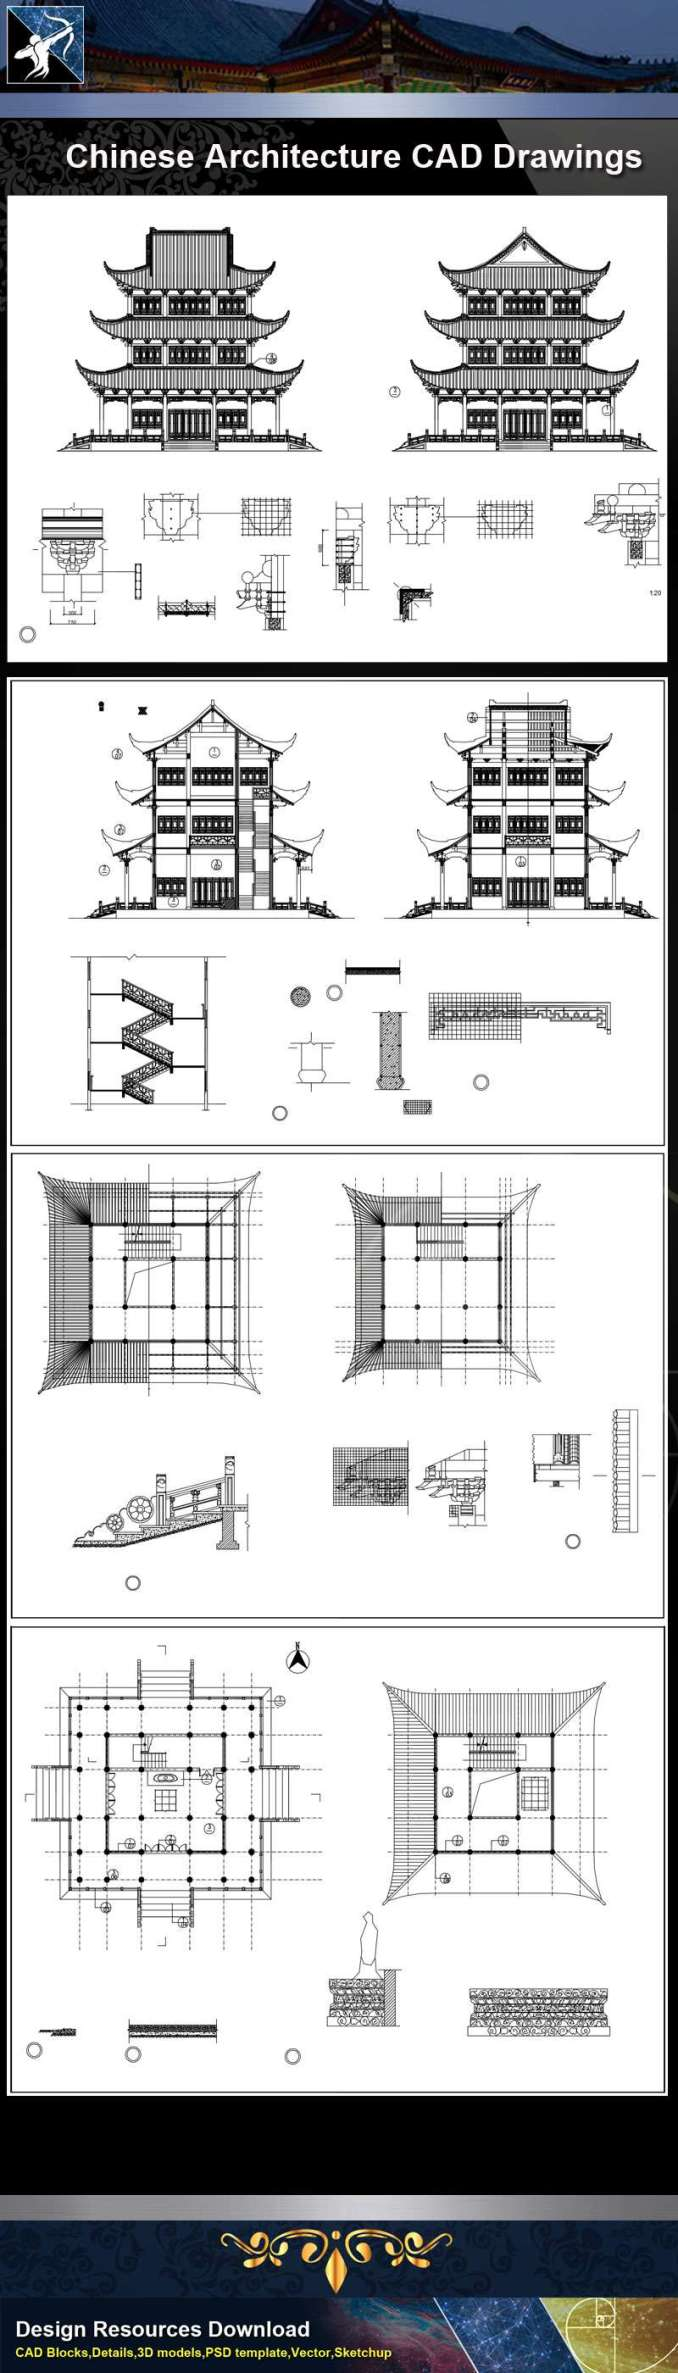 ★【Chinese Architecture CAD Drawings】@Chinese Temple Drawings,CAD  Details,Elevation V 2